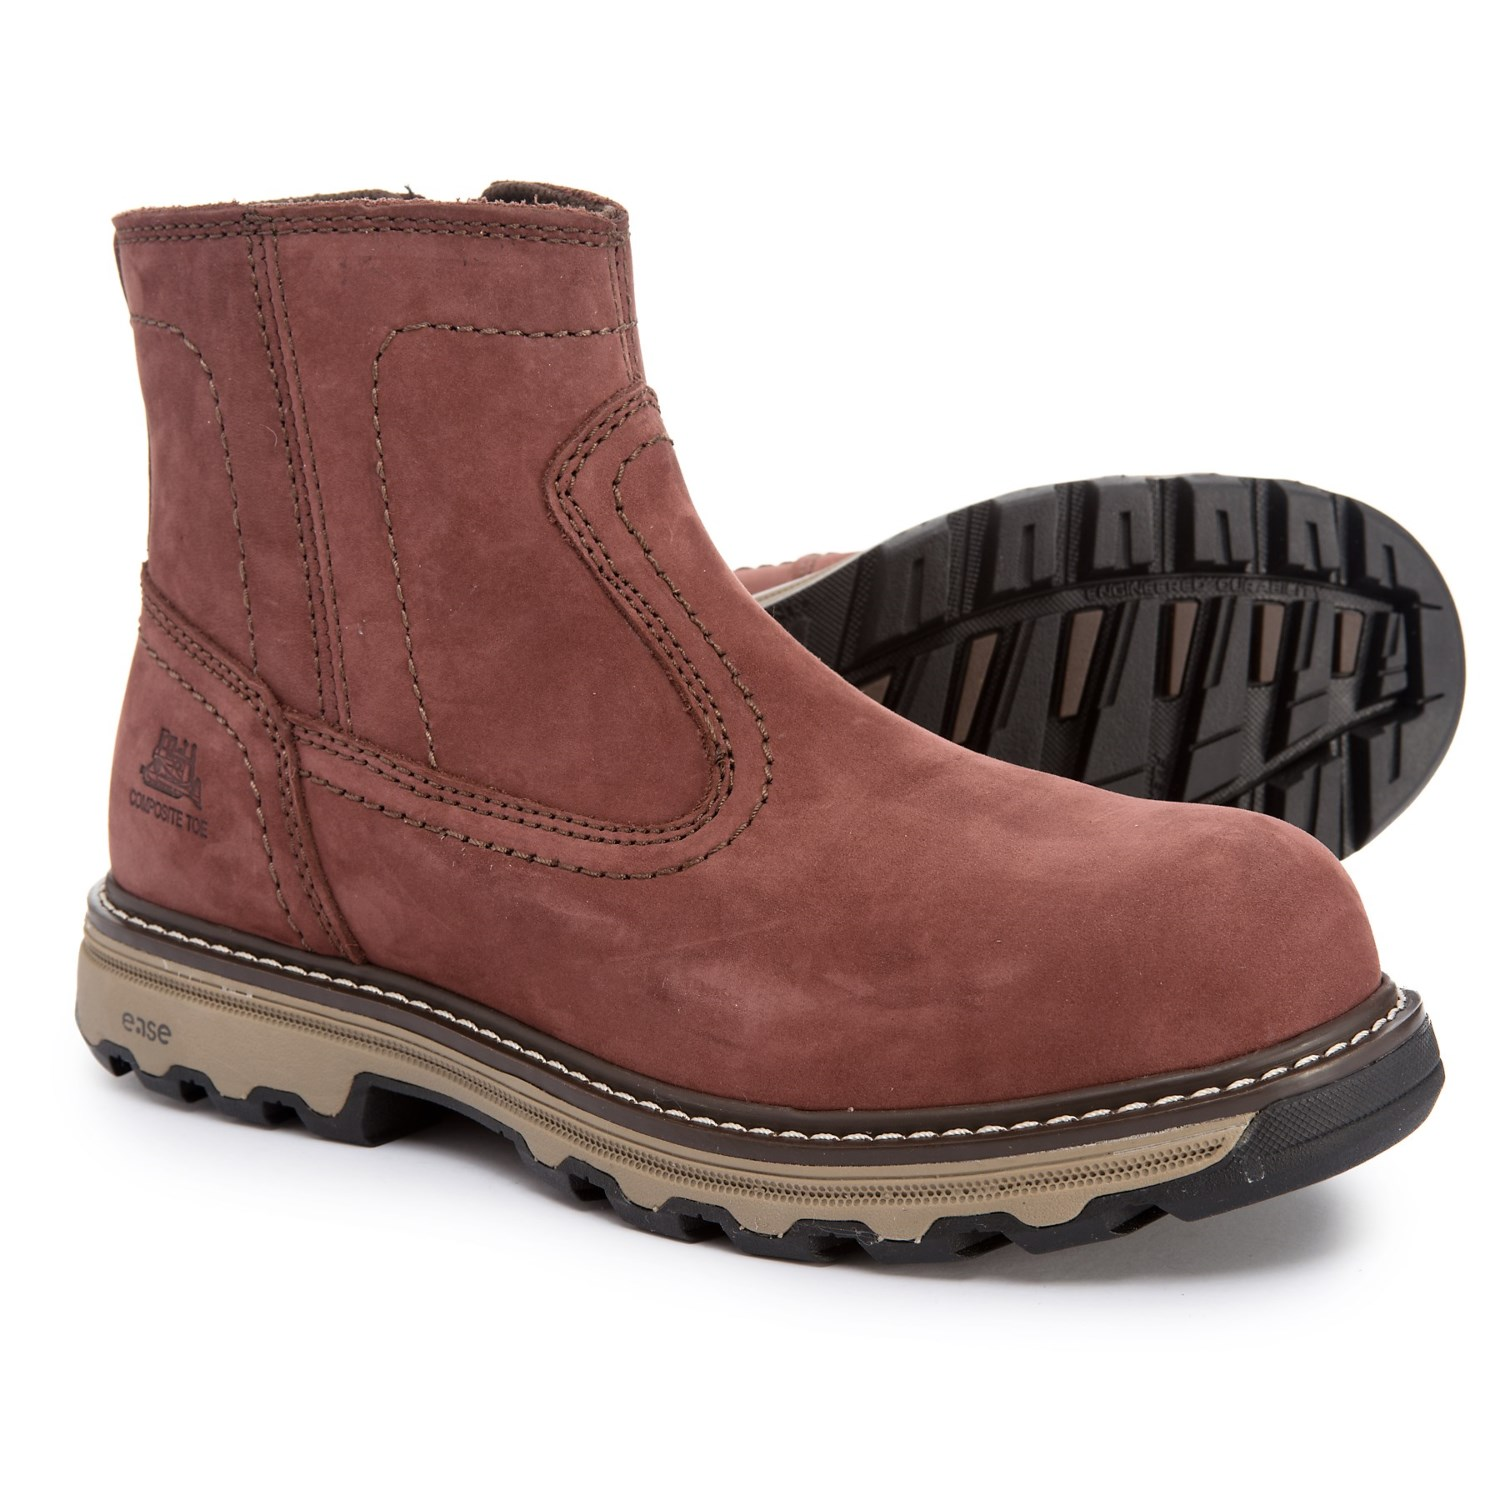 db05c14b0da Caterpillar Fragment Work Boots - Composite Safety Toe, Leather (For Women)